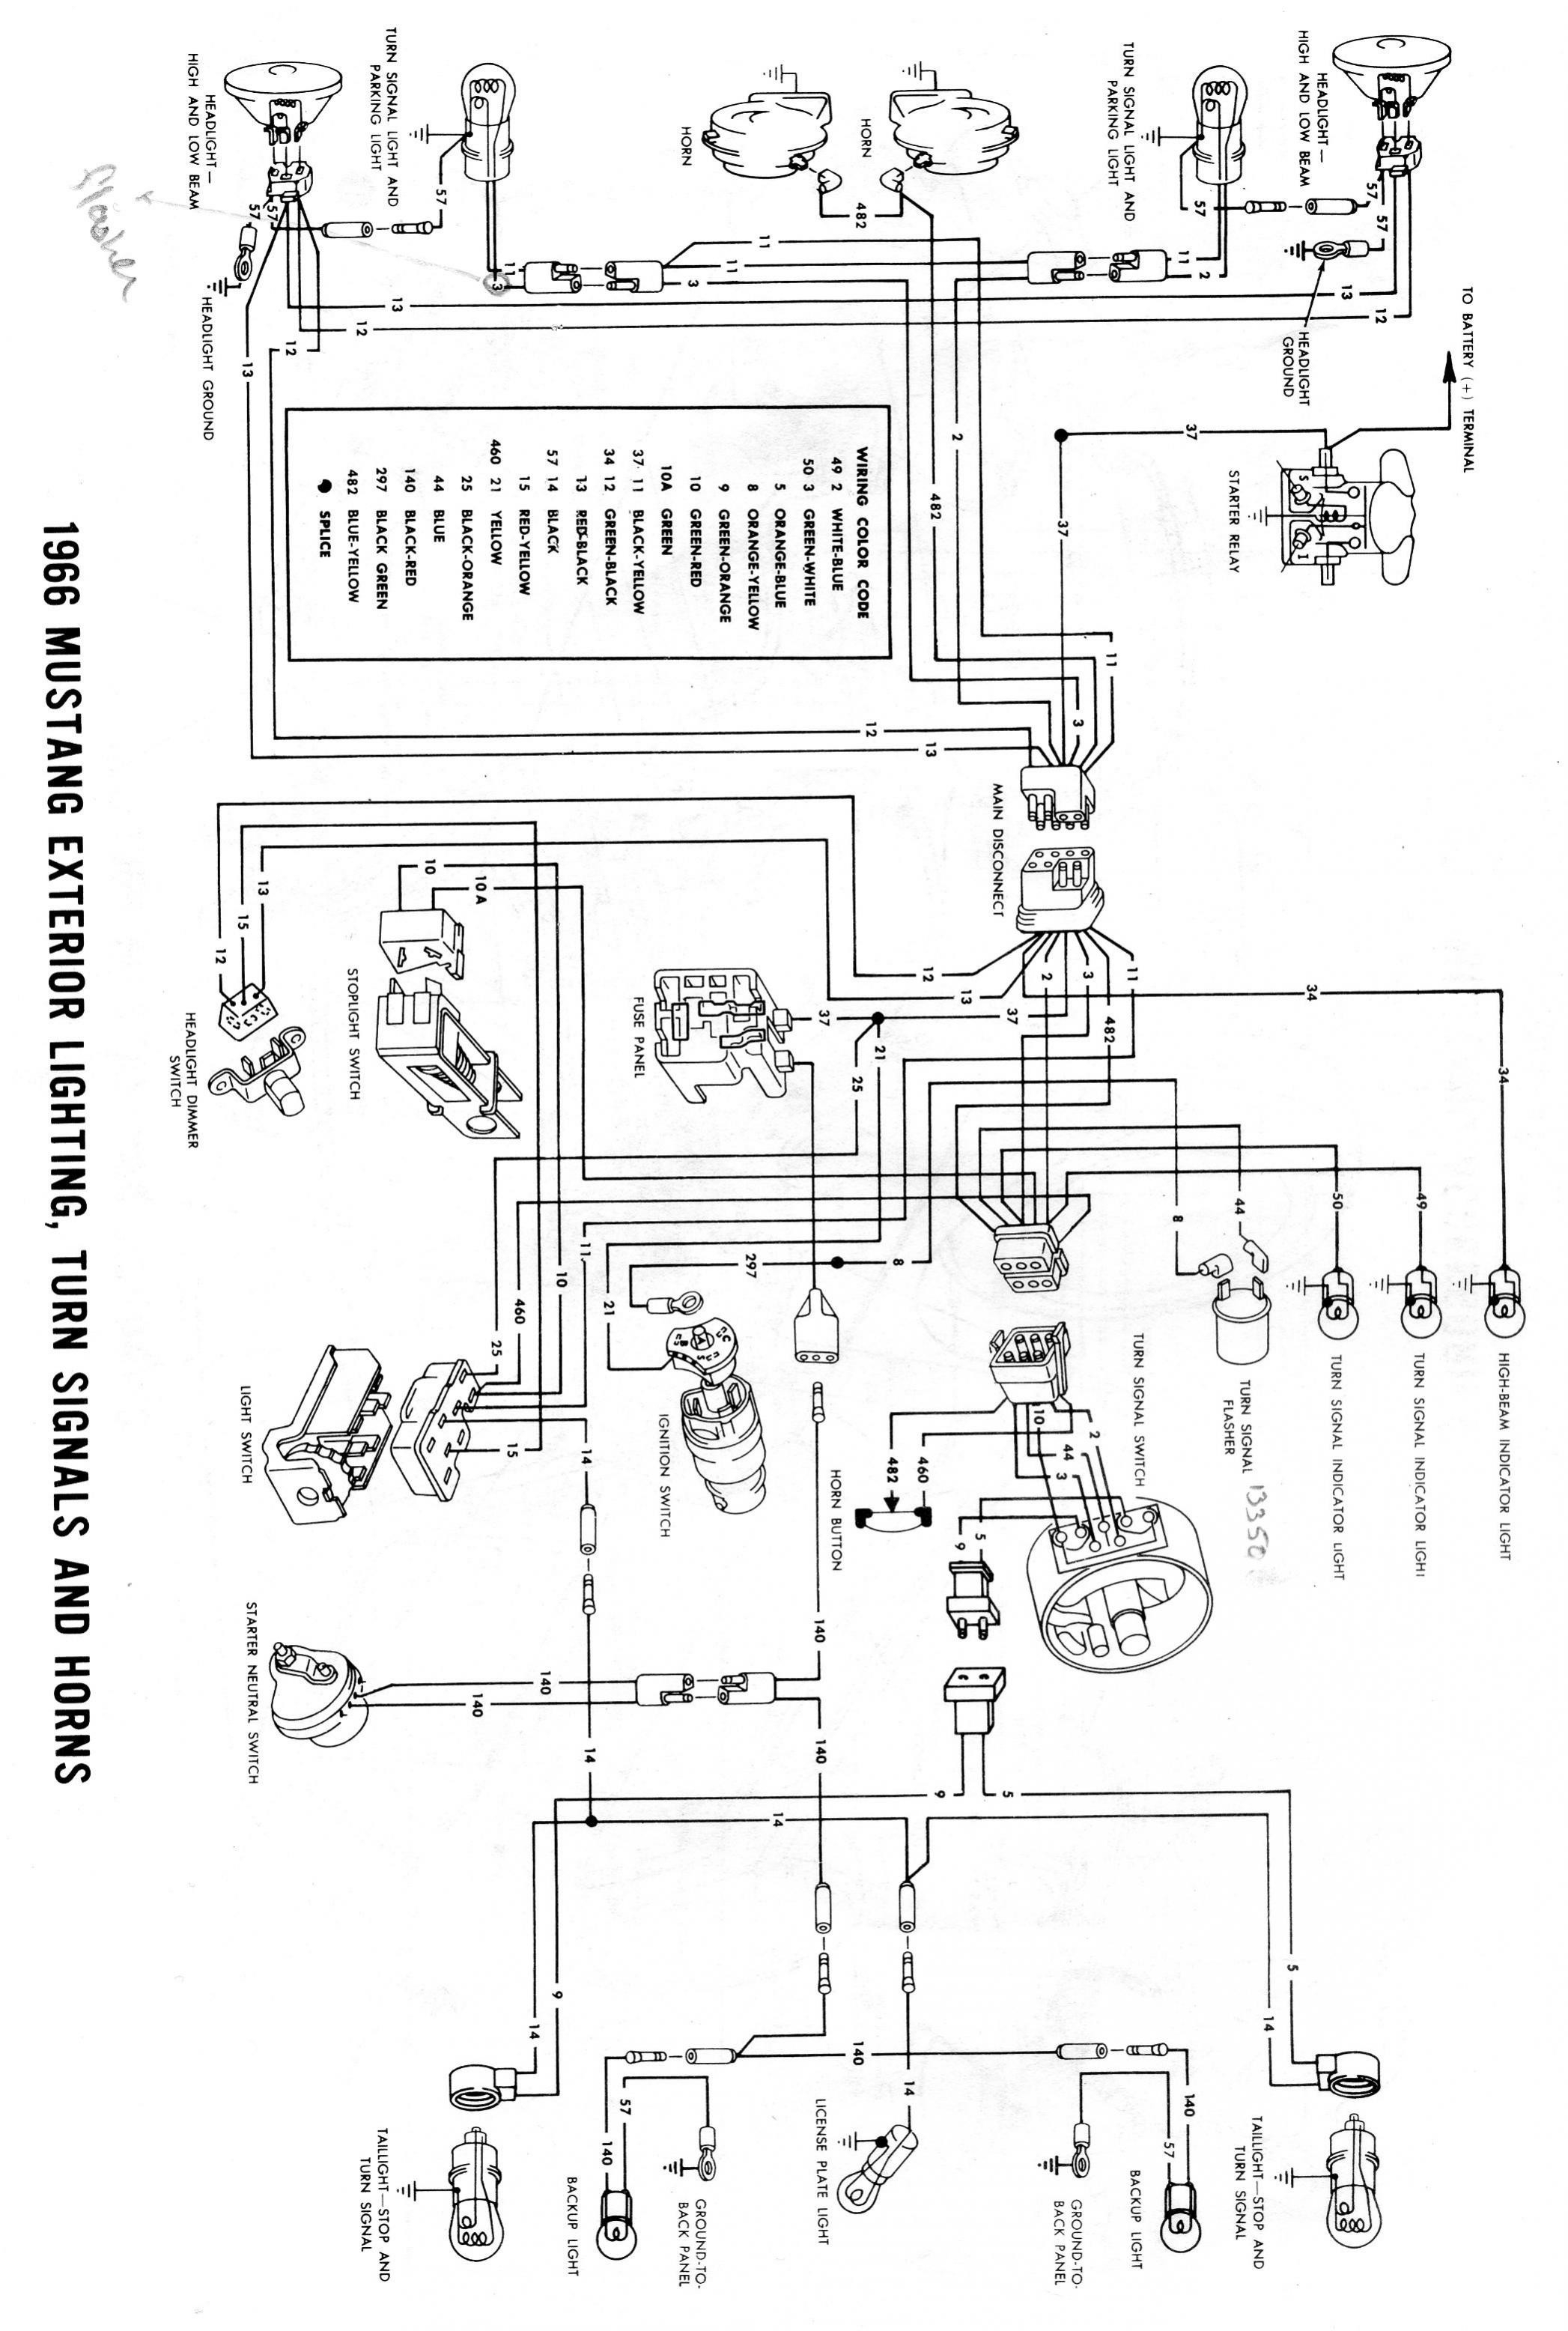 wiring diagram also 67 ford mustang wiring diagram as well as ford